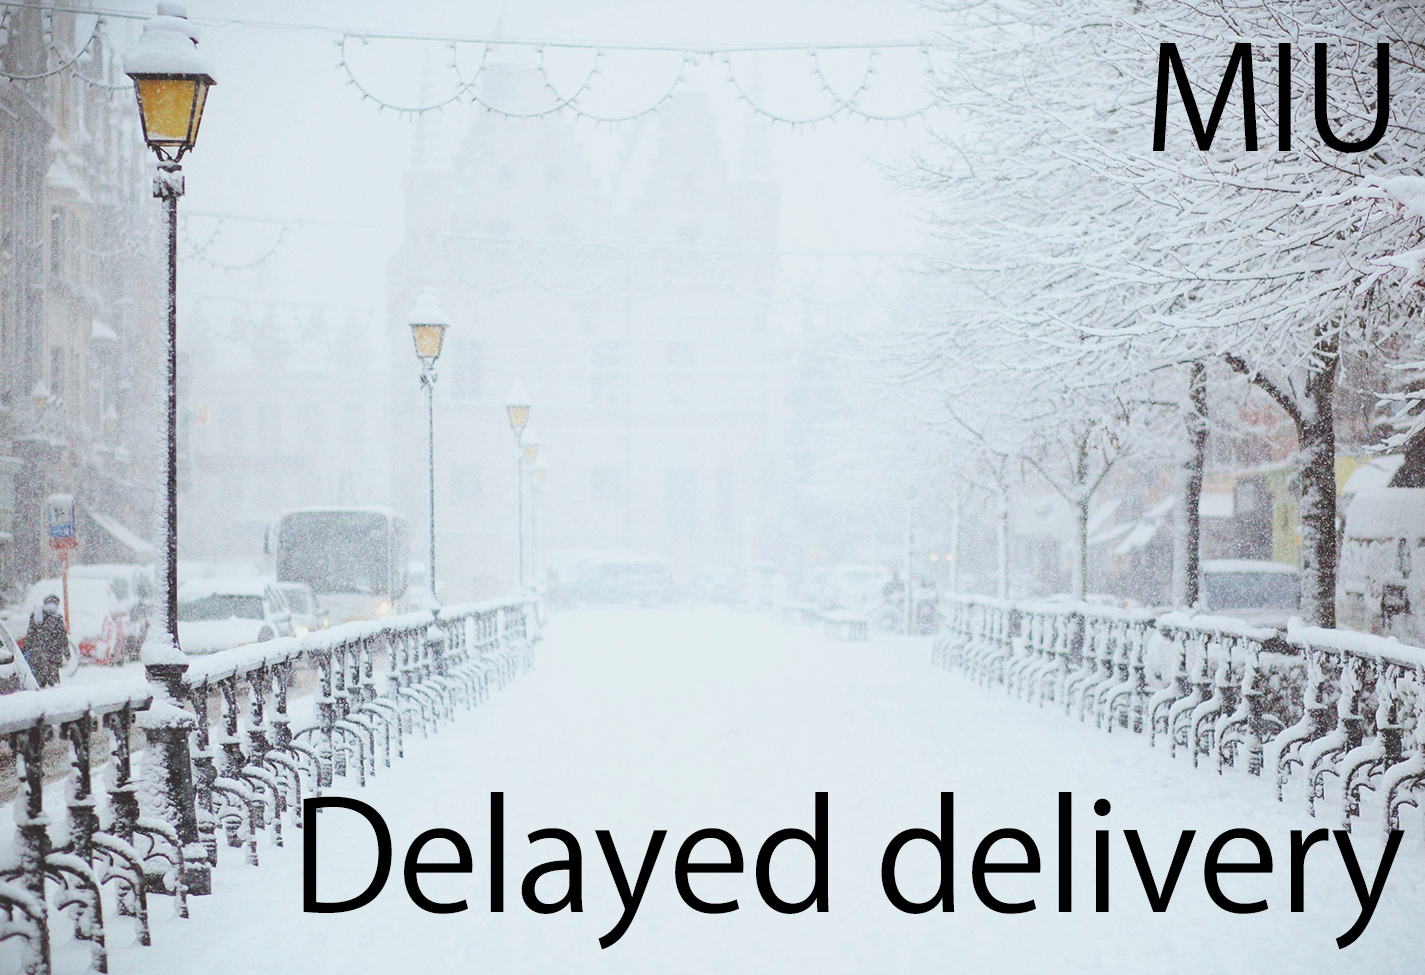 Delayeddelivery